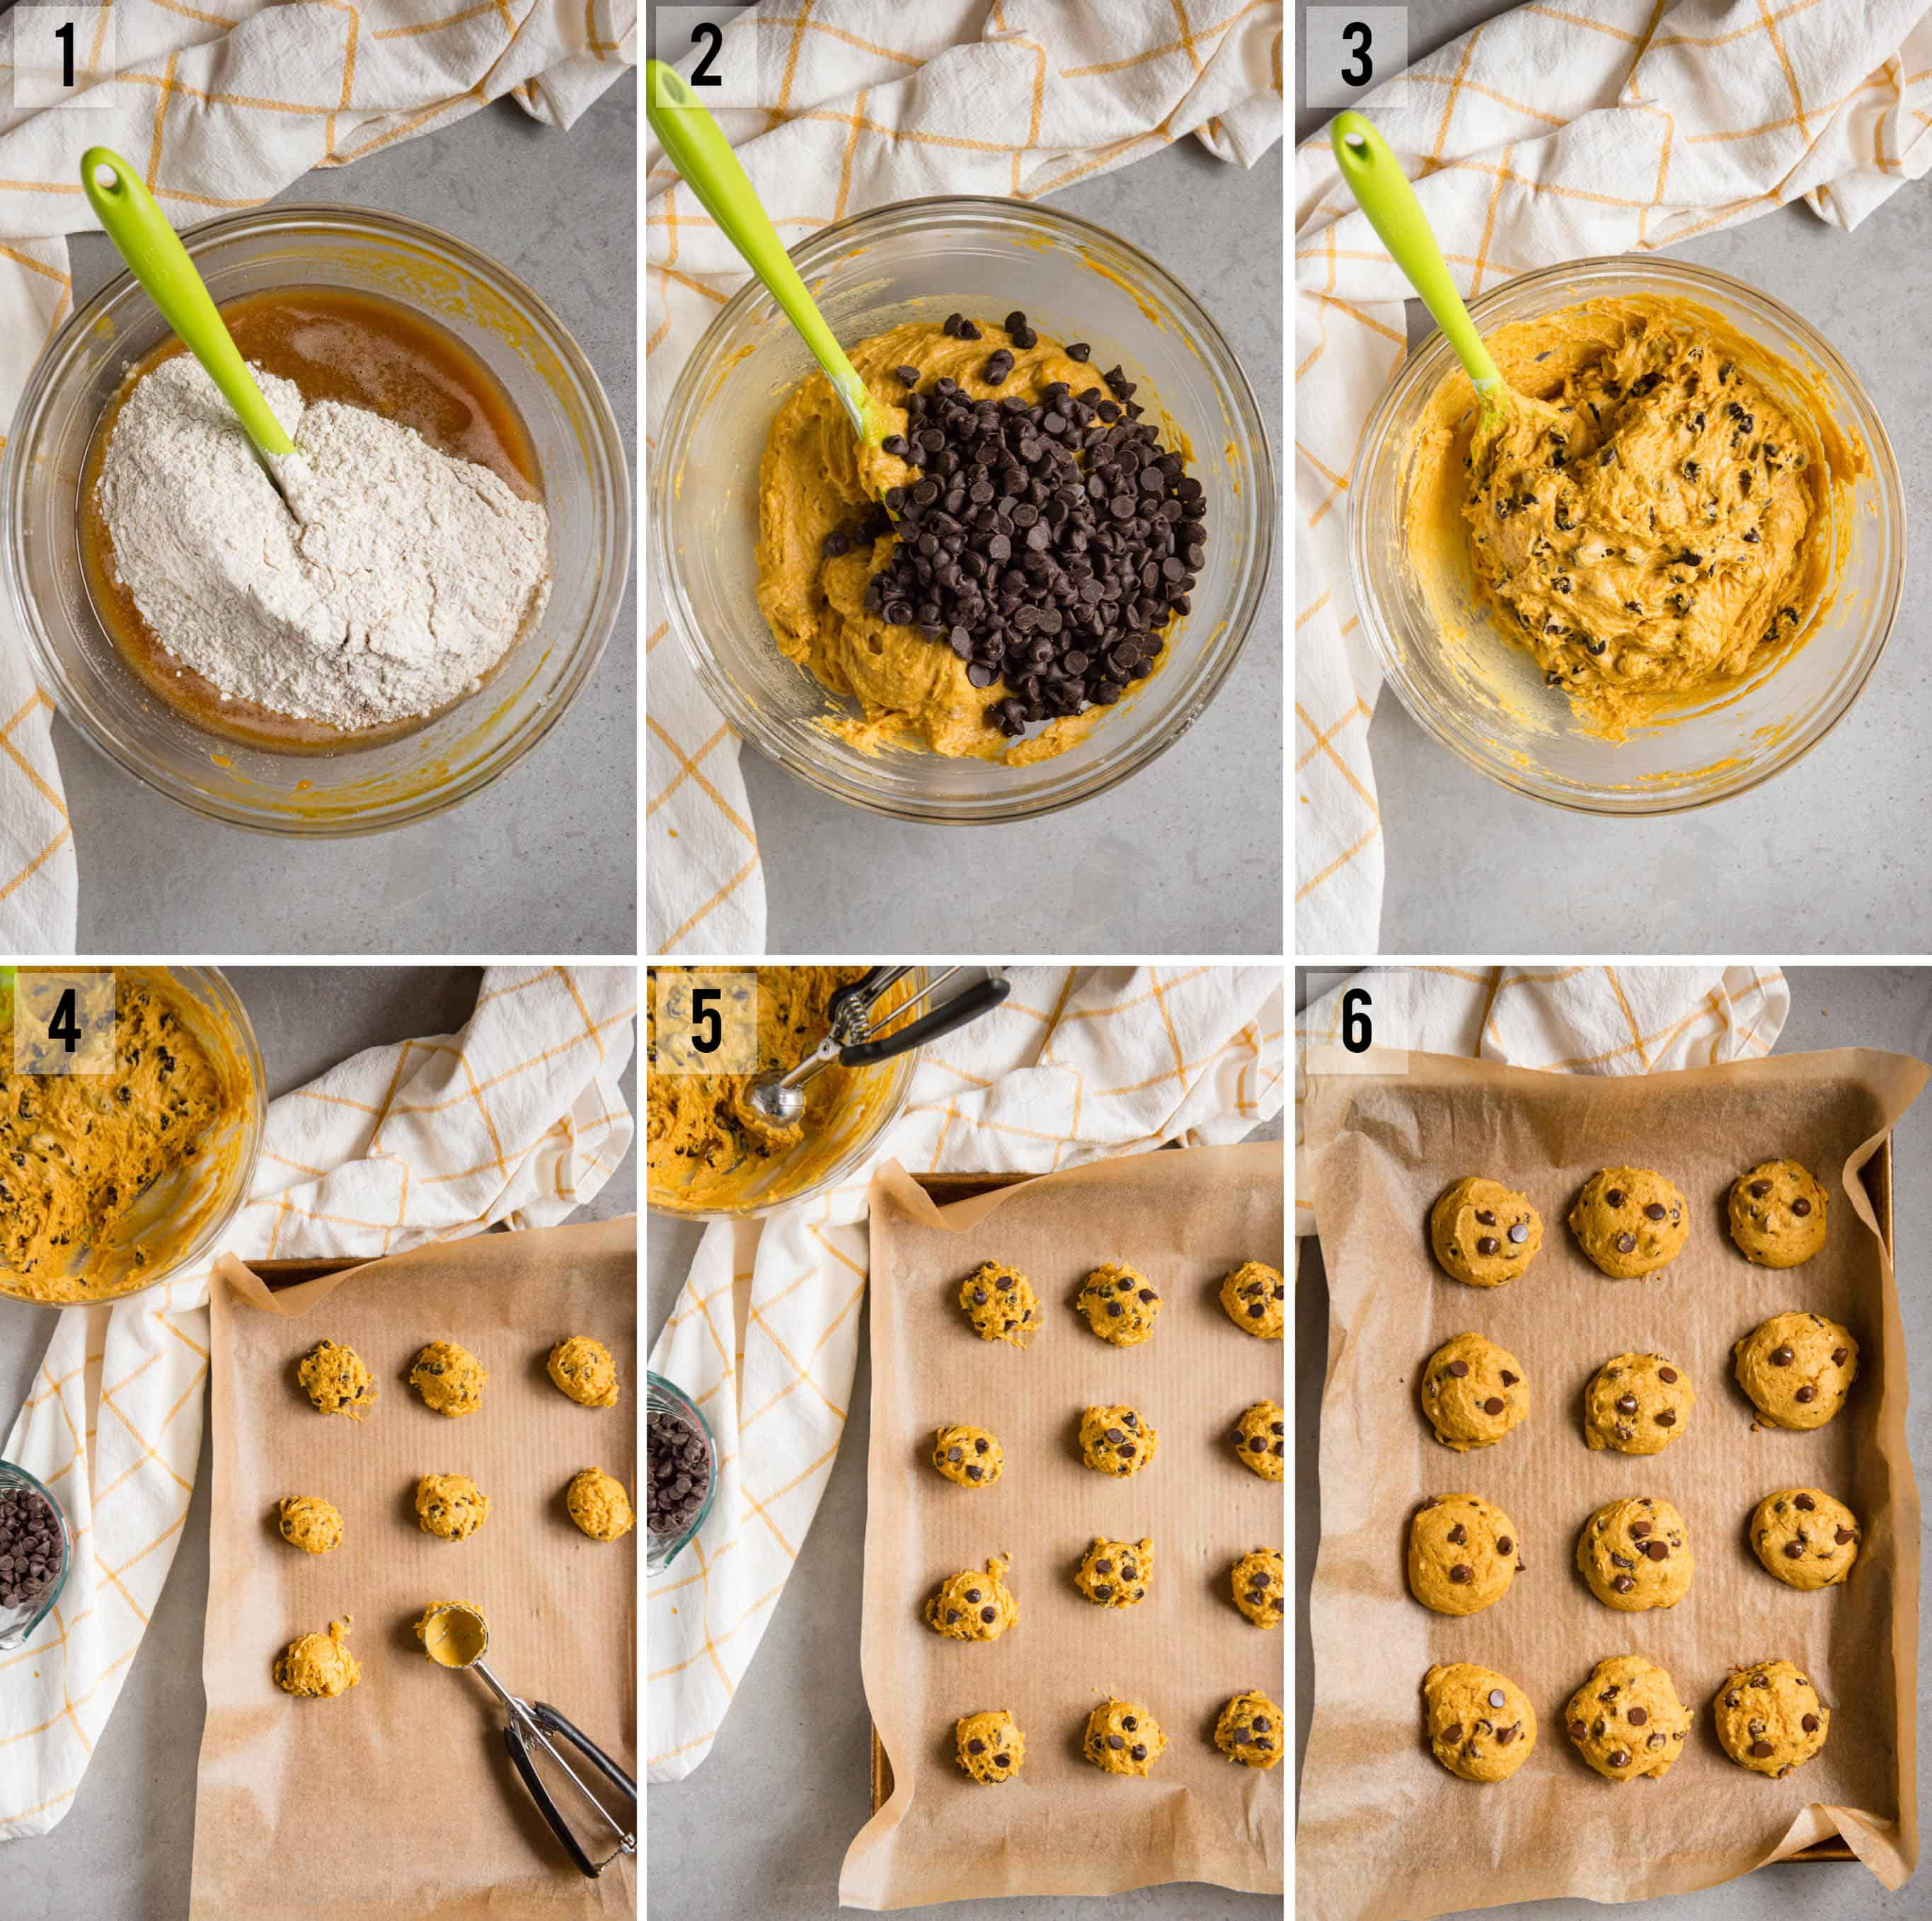 step by step instructions on how to make Pumpkin Chocolate Chip Cookies